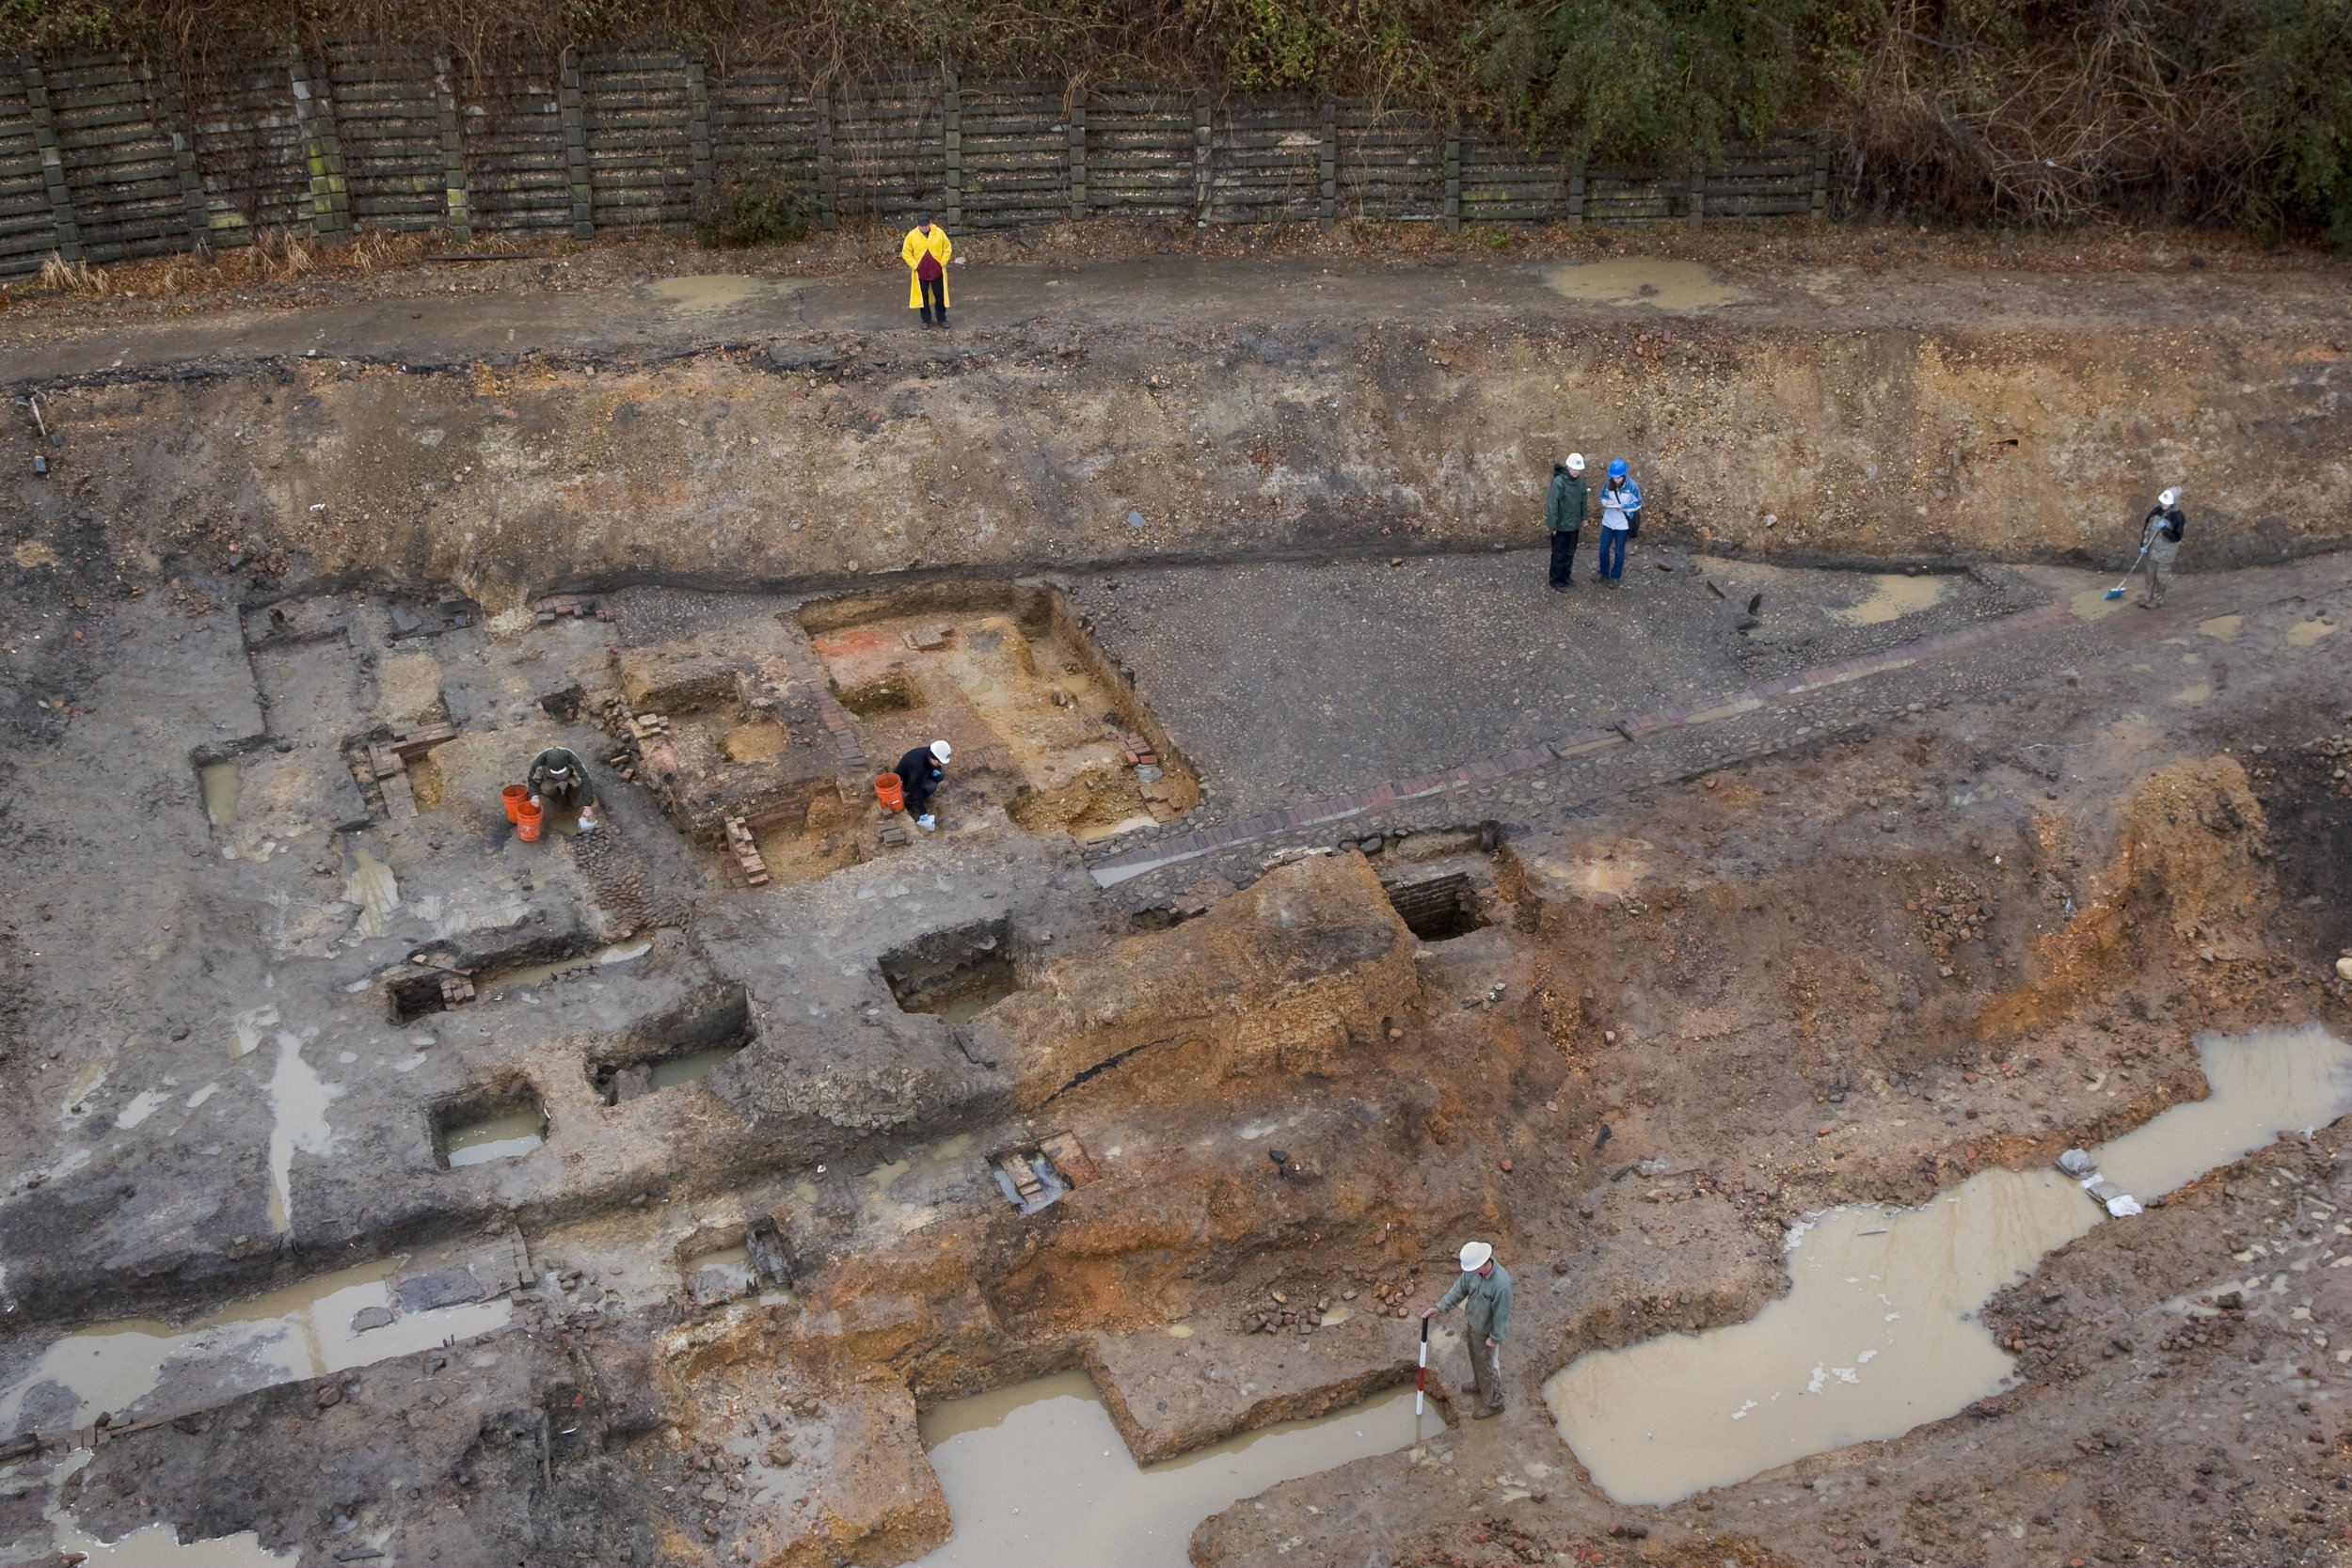 Excavation of the Lumpkin's Slave Jail site